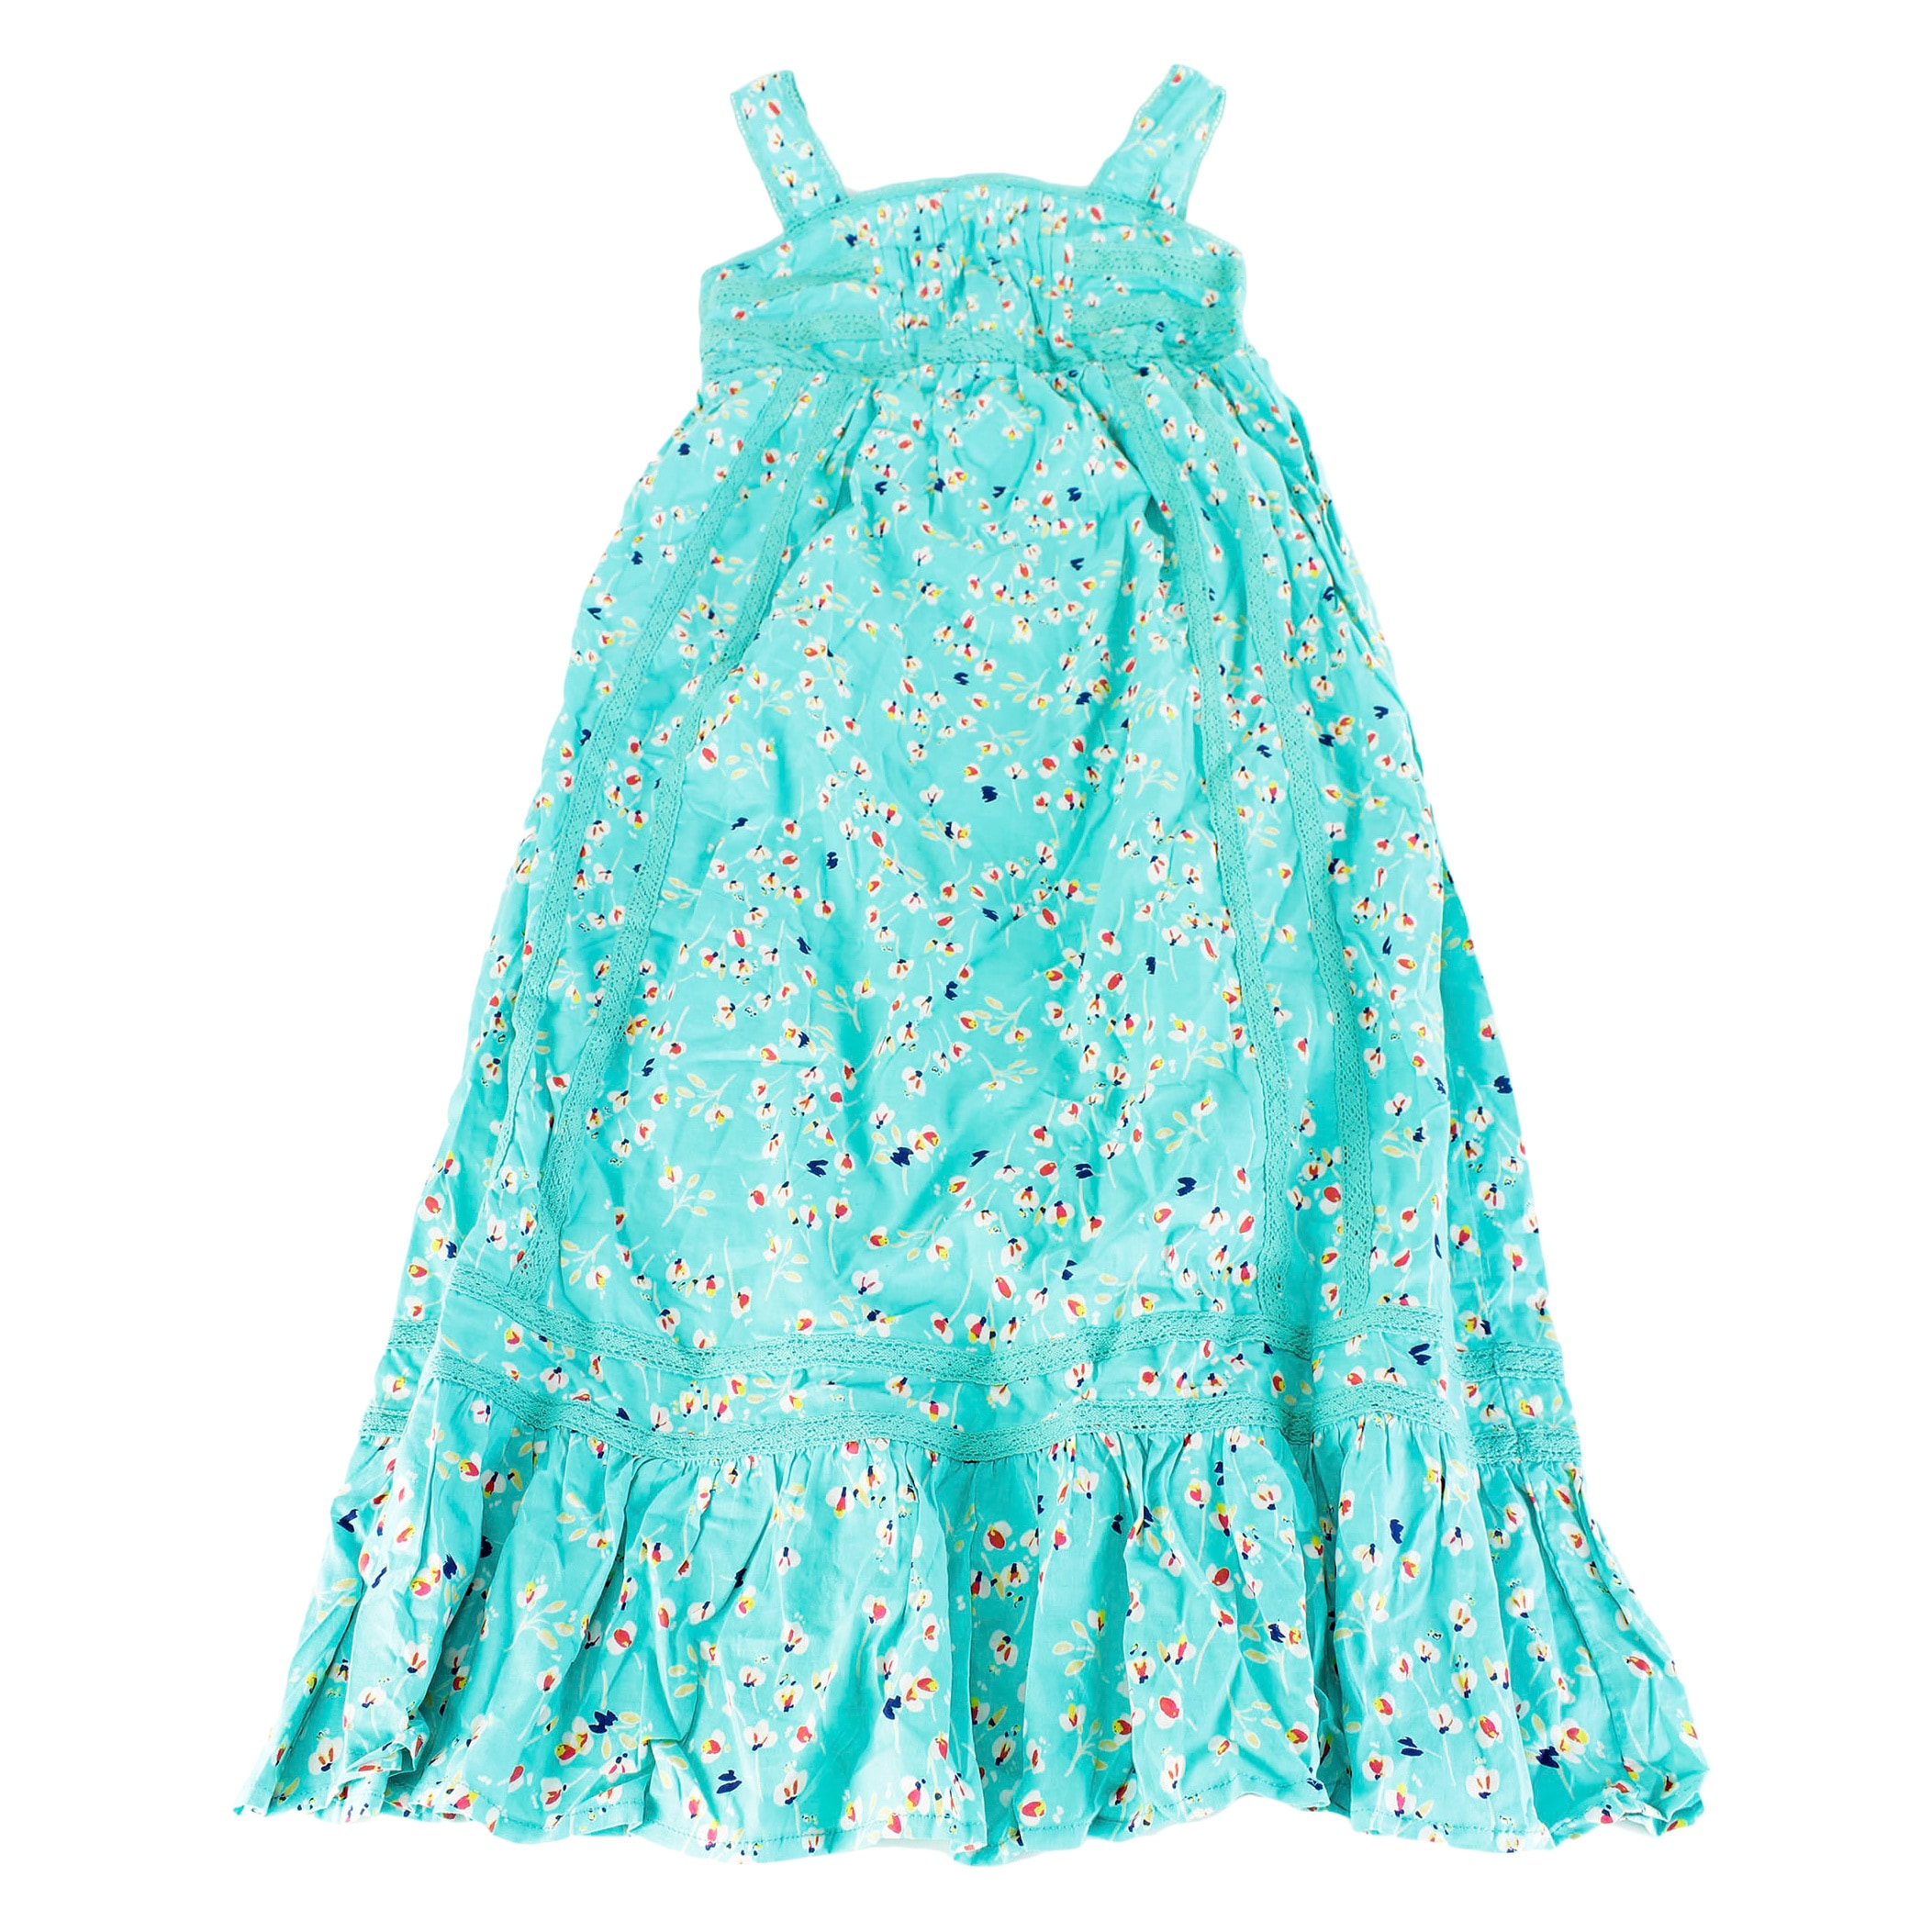 6dafad6f9785b Shop Jessica Simpson Girls' Green Cotton Size S U.S. Regular Full-length  Dress - Free Shipping On Orders Over $45 - Overstock - 11982034